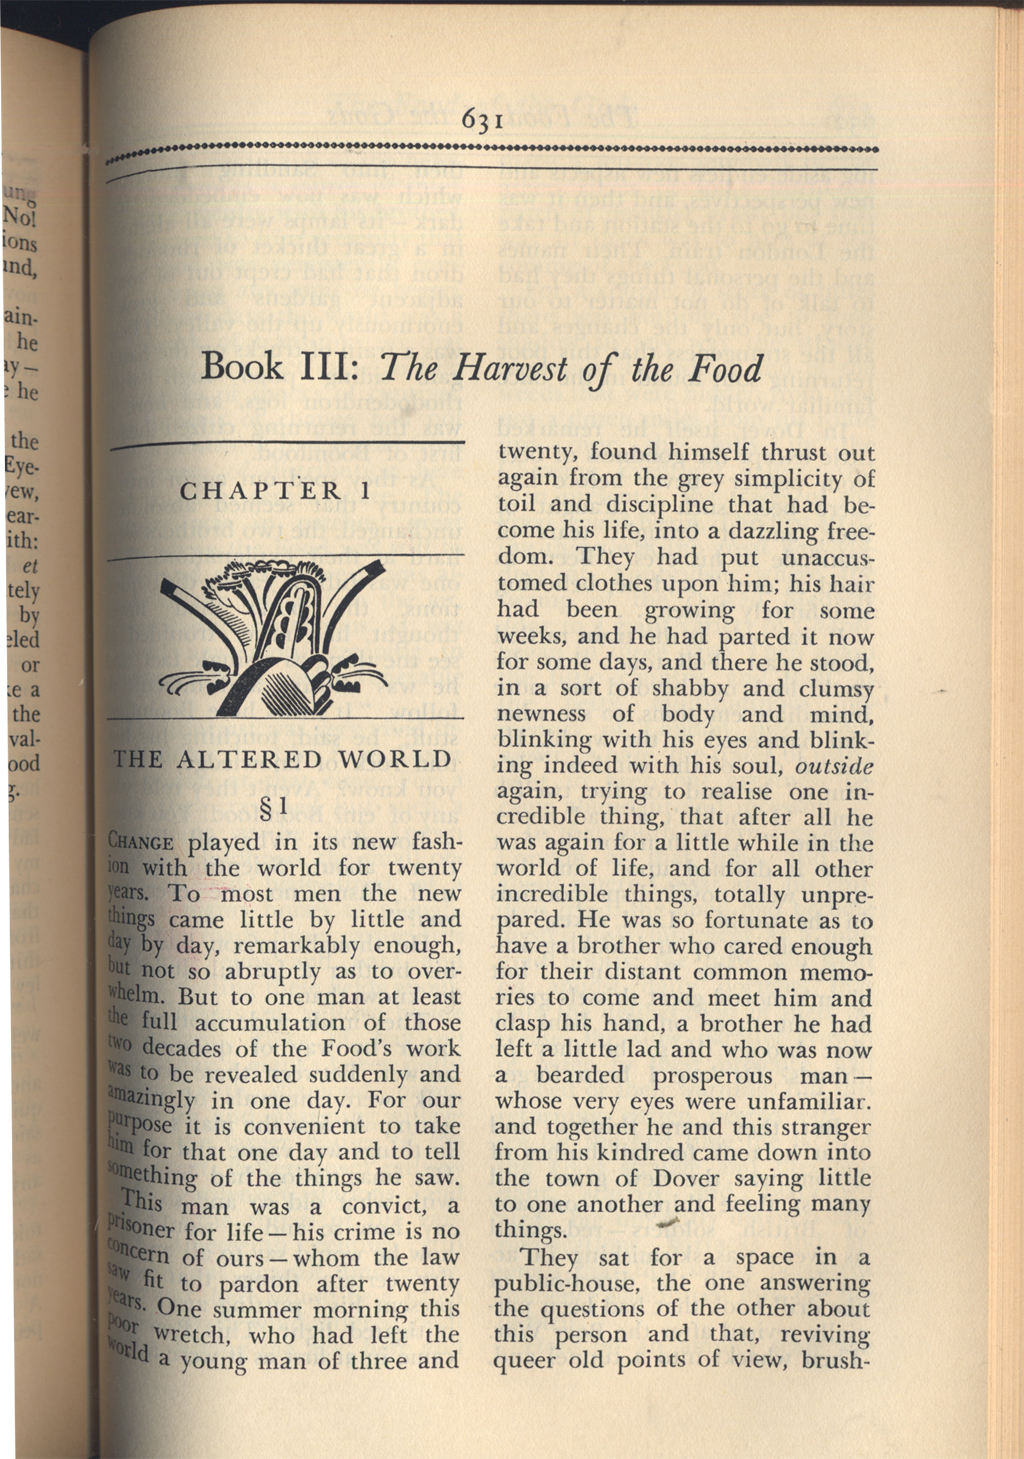 The opening of Book III: The Harvest of the Food, p. 631 from Seven Famous Novels by H.G. Wells (New York: Alfred A. Knopf, 1934). Typography and stencil ornament designed by W.A. Dwiggins.